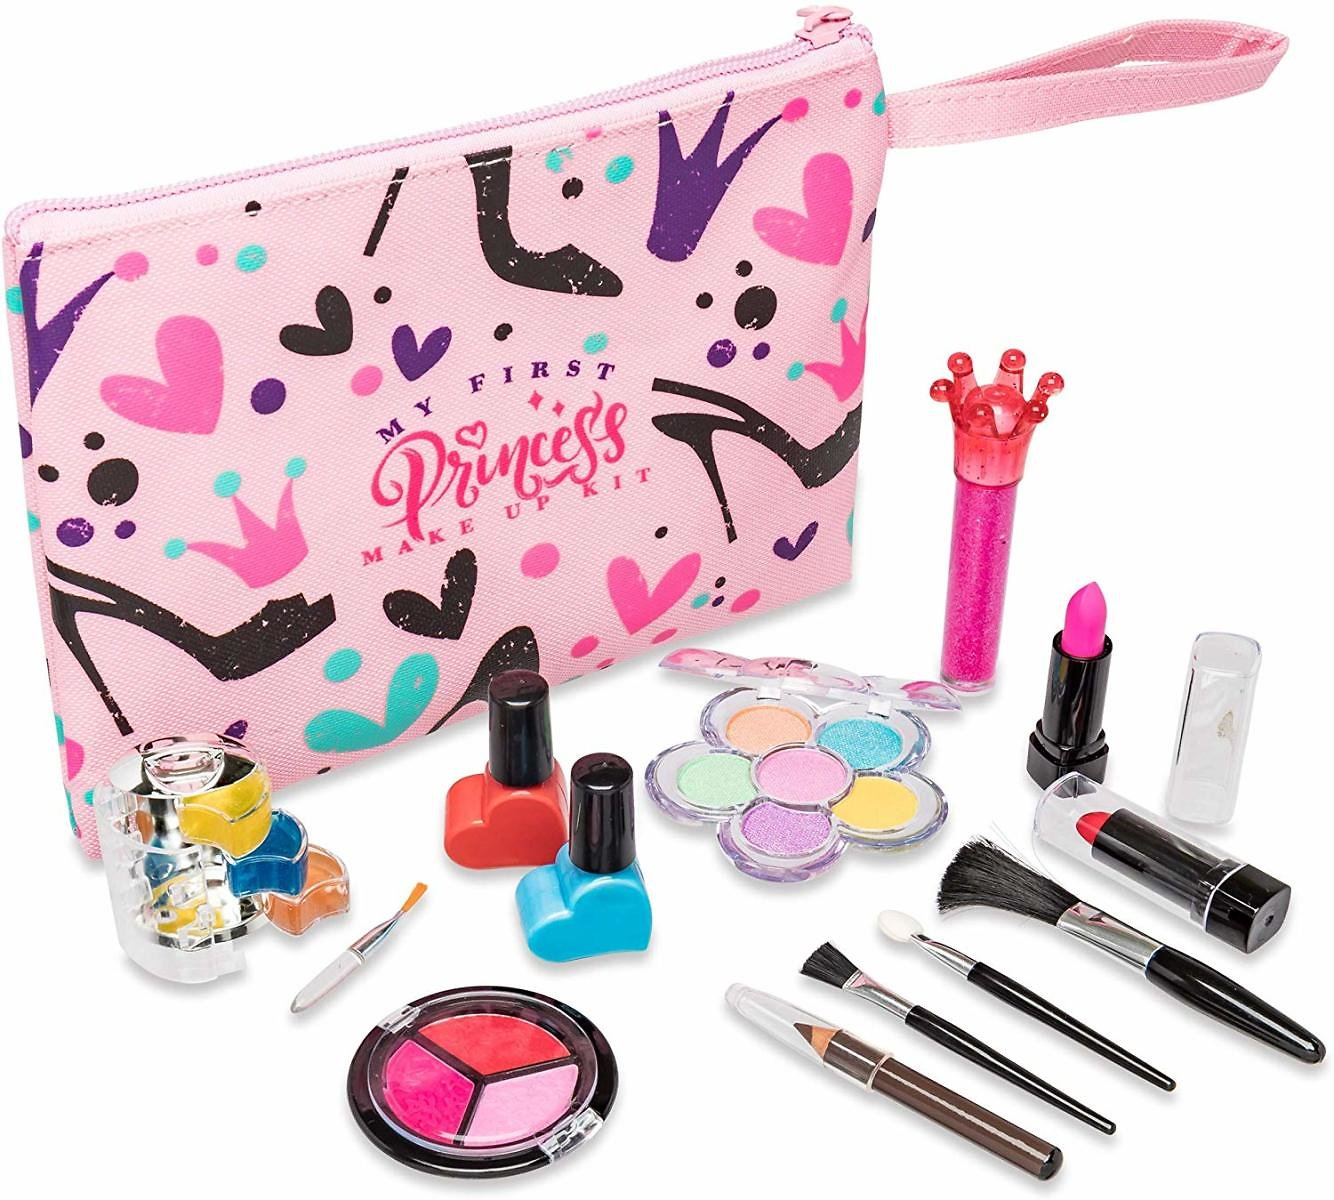 My First Princess Make Up Kit - 12 Pc Kids Makeup Set